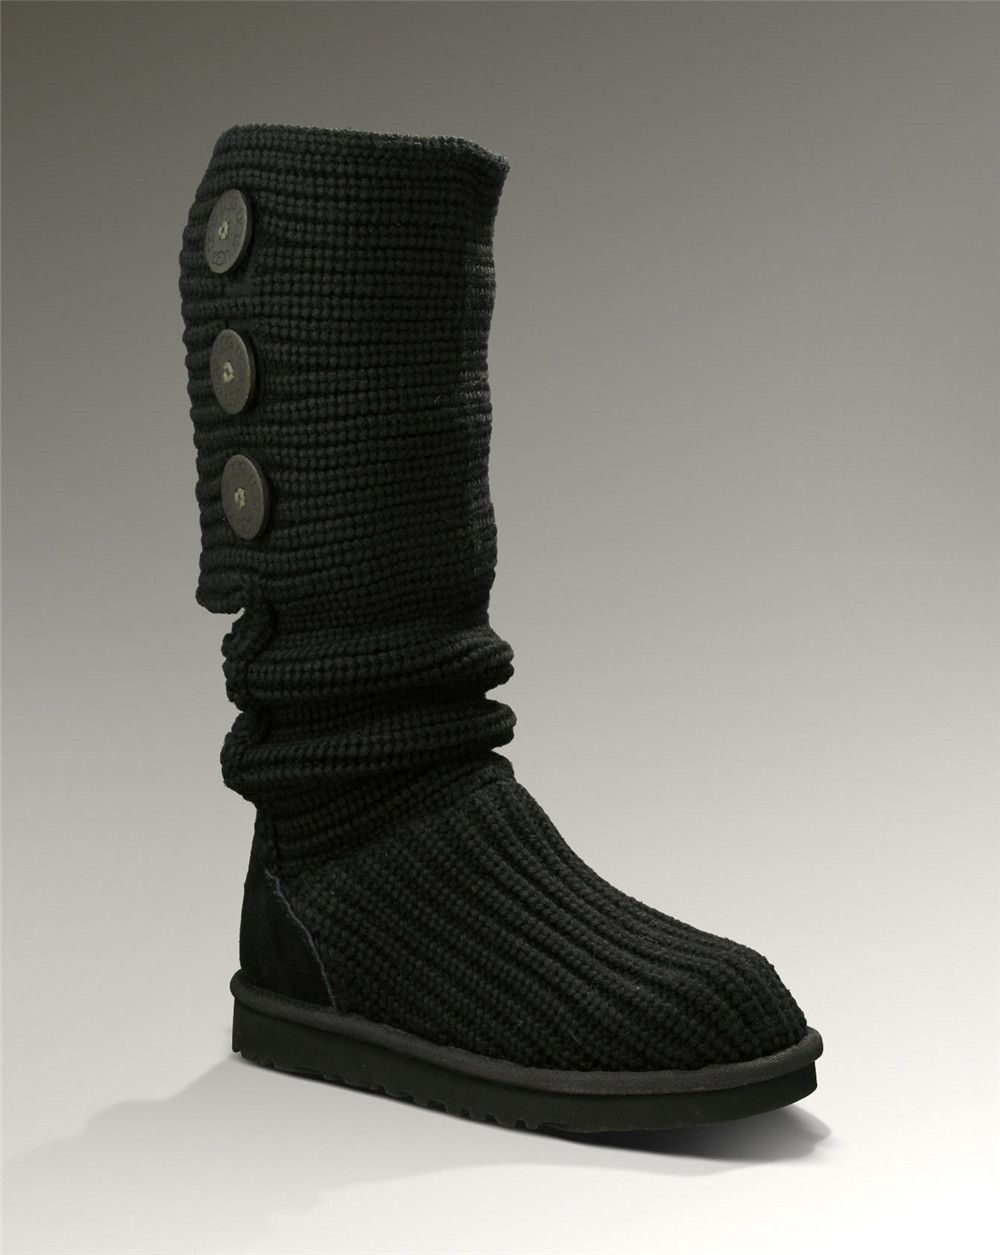 Ugg lattice cardy boots + FREE SHIPPING |